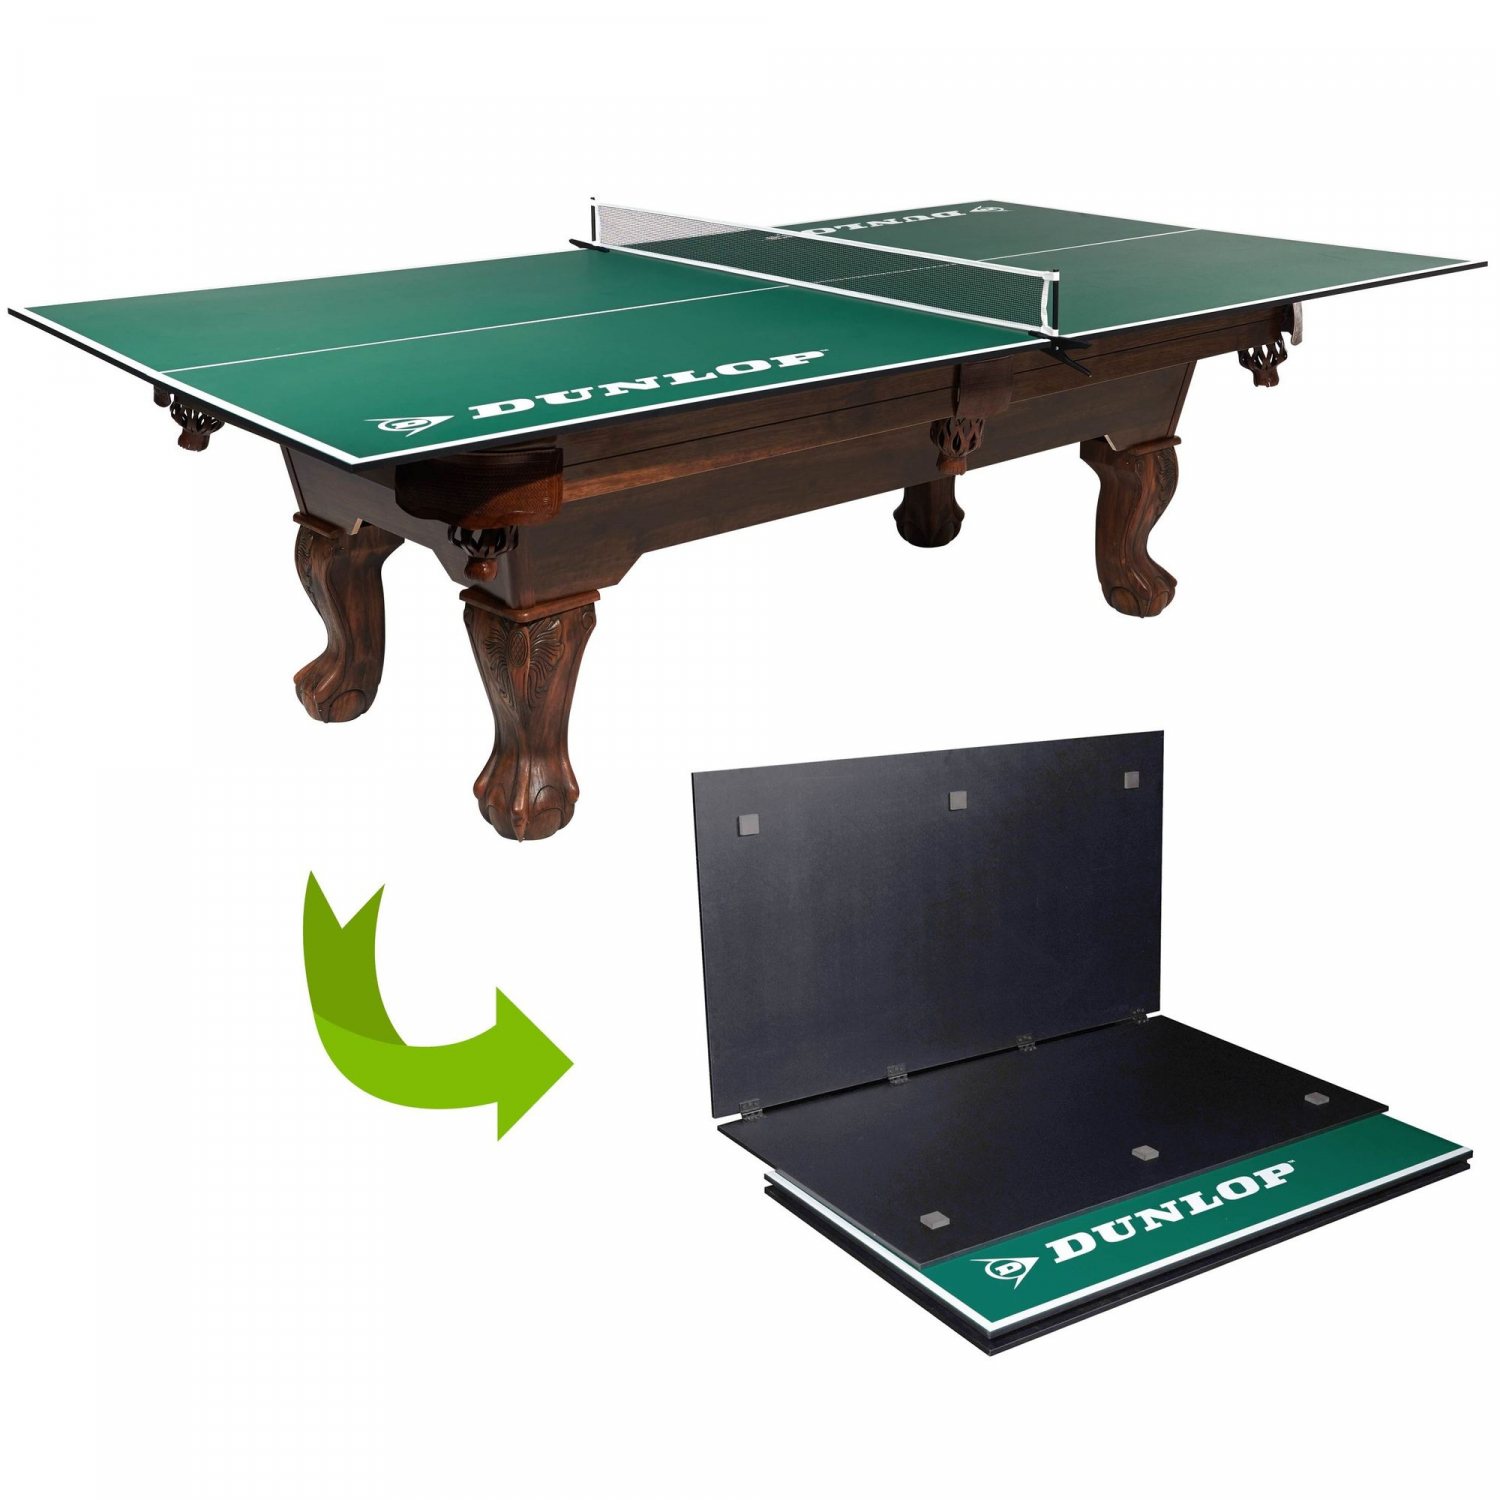 Ping Pong Table Official Size Conversion Top Fits Over Pool Table Kids Game Room 821735441421 Ebay